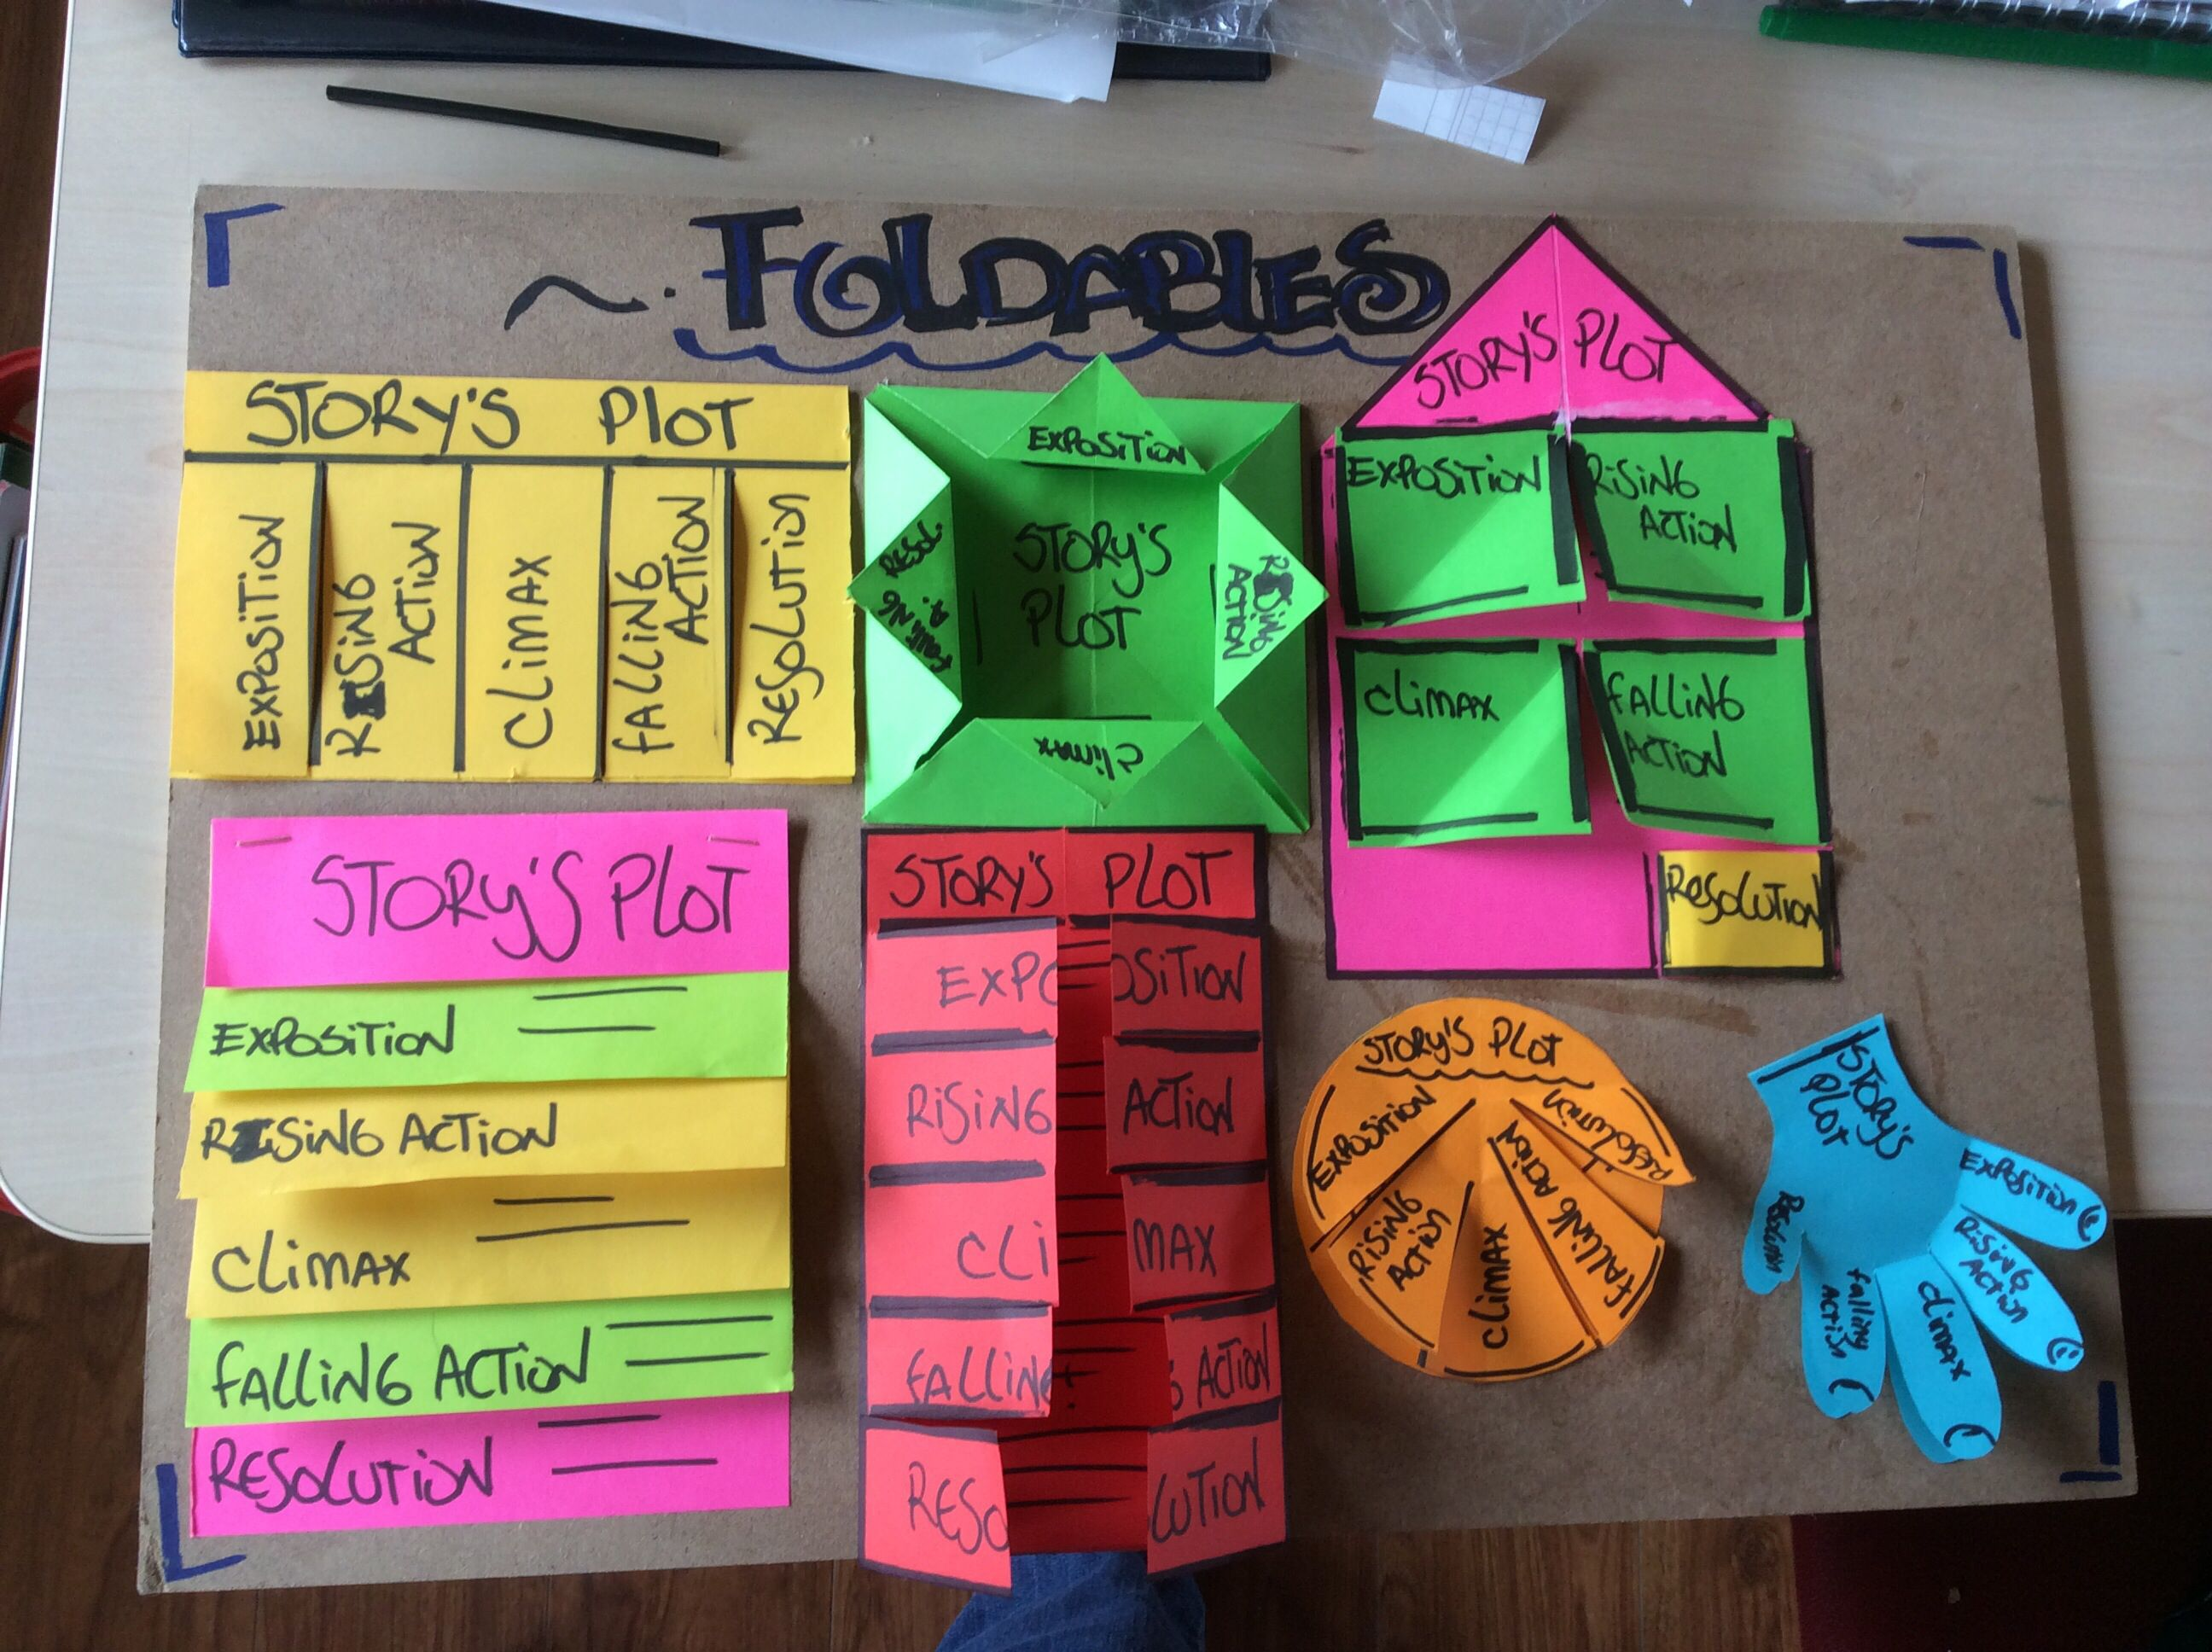 Use Foldables To Teach Your Students The Elements Of The